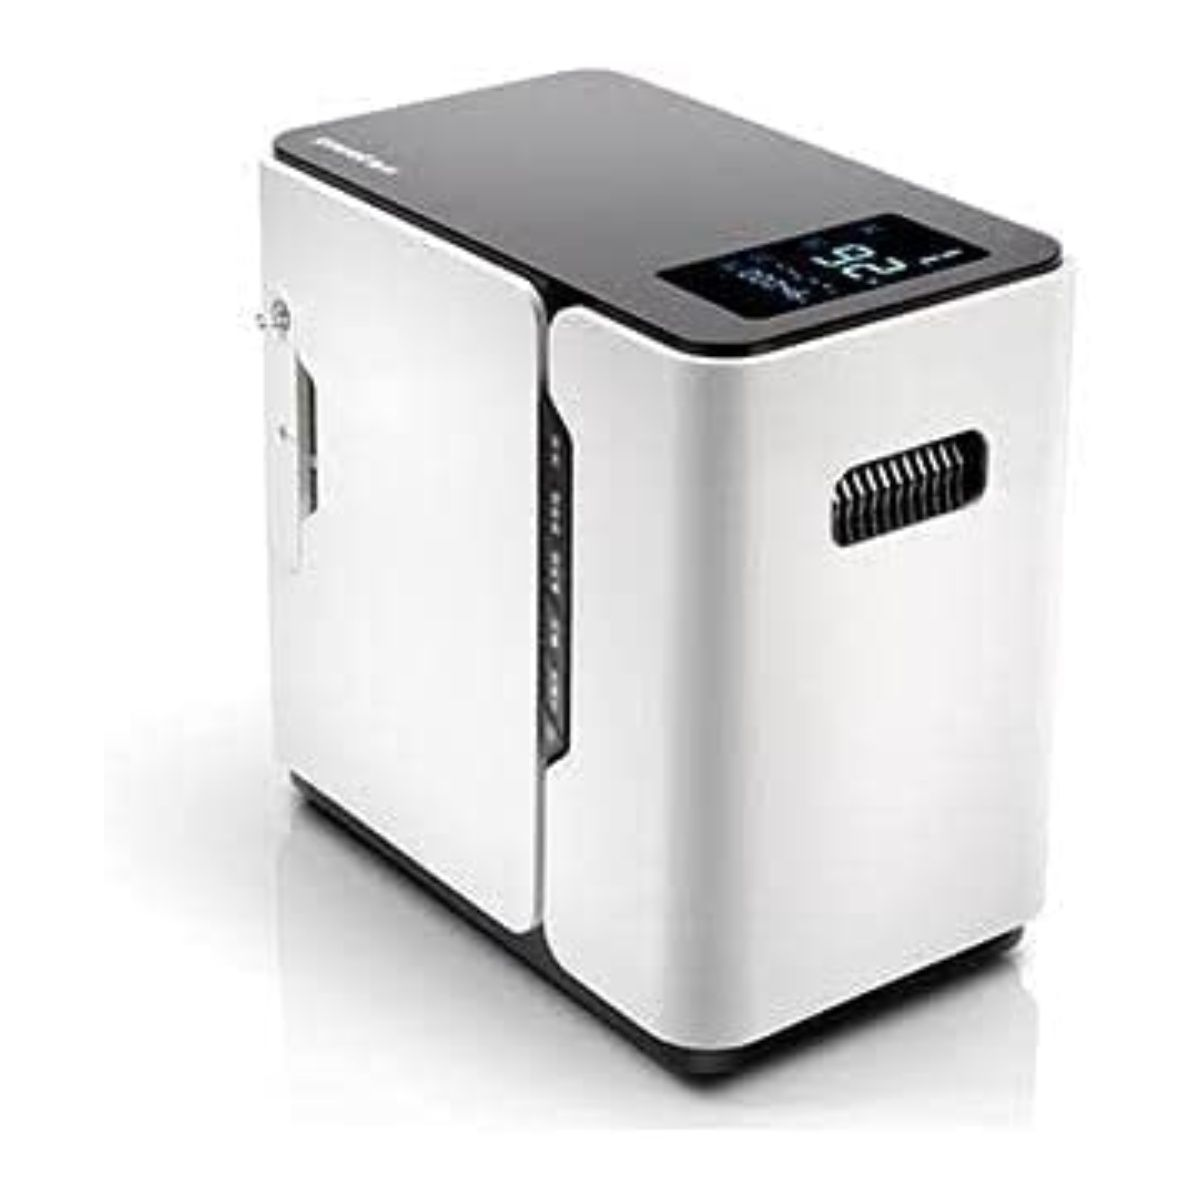 Yuwell YU300 Home Oxygen Concentrator